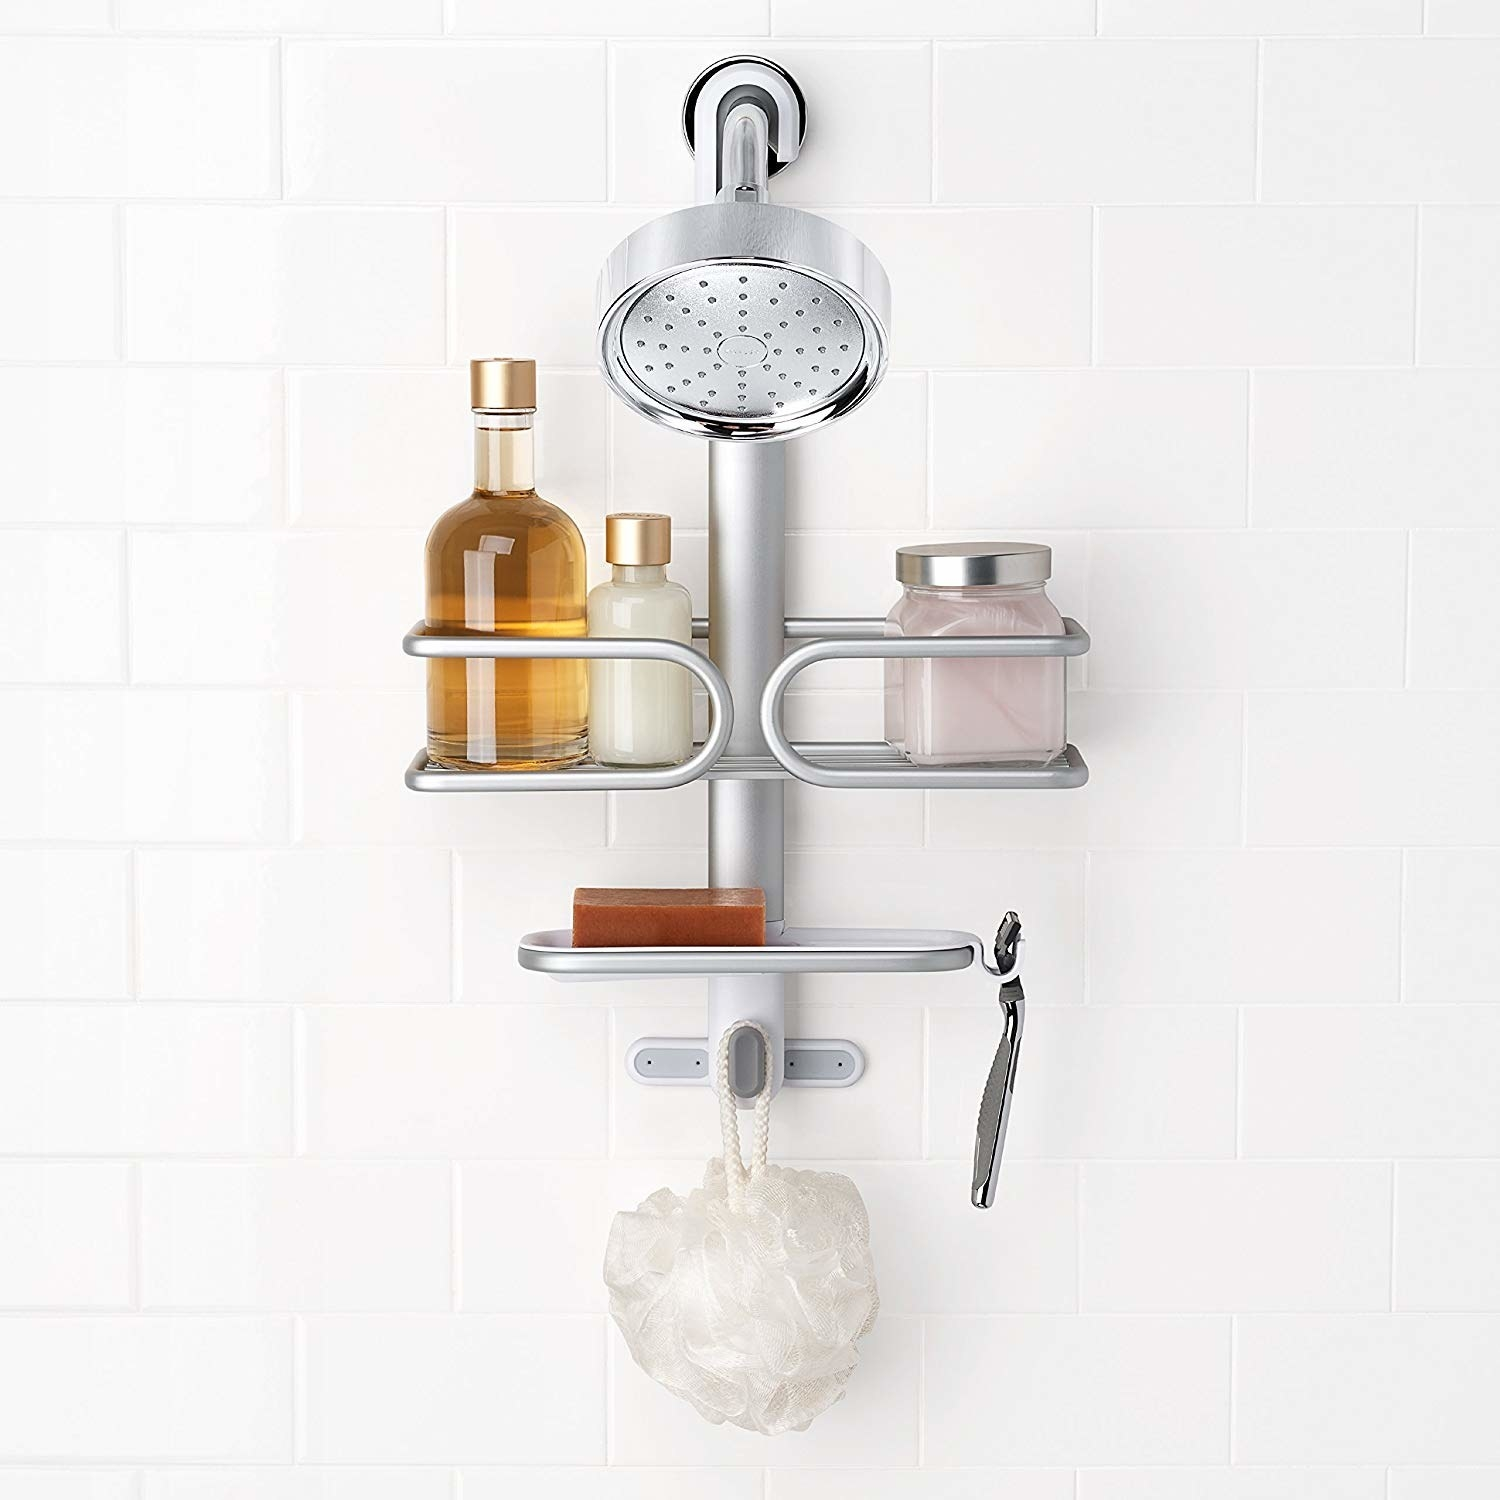 Shower caddy hanging from nozzle